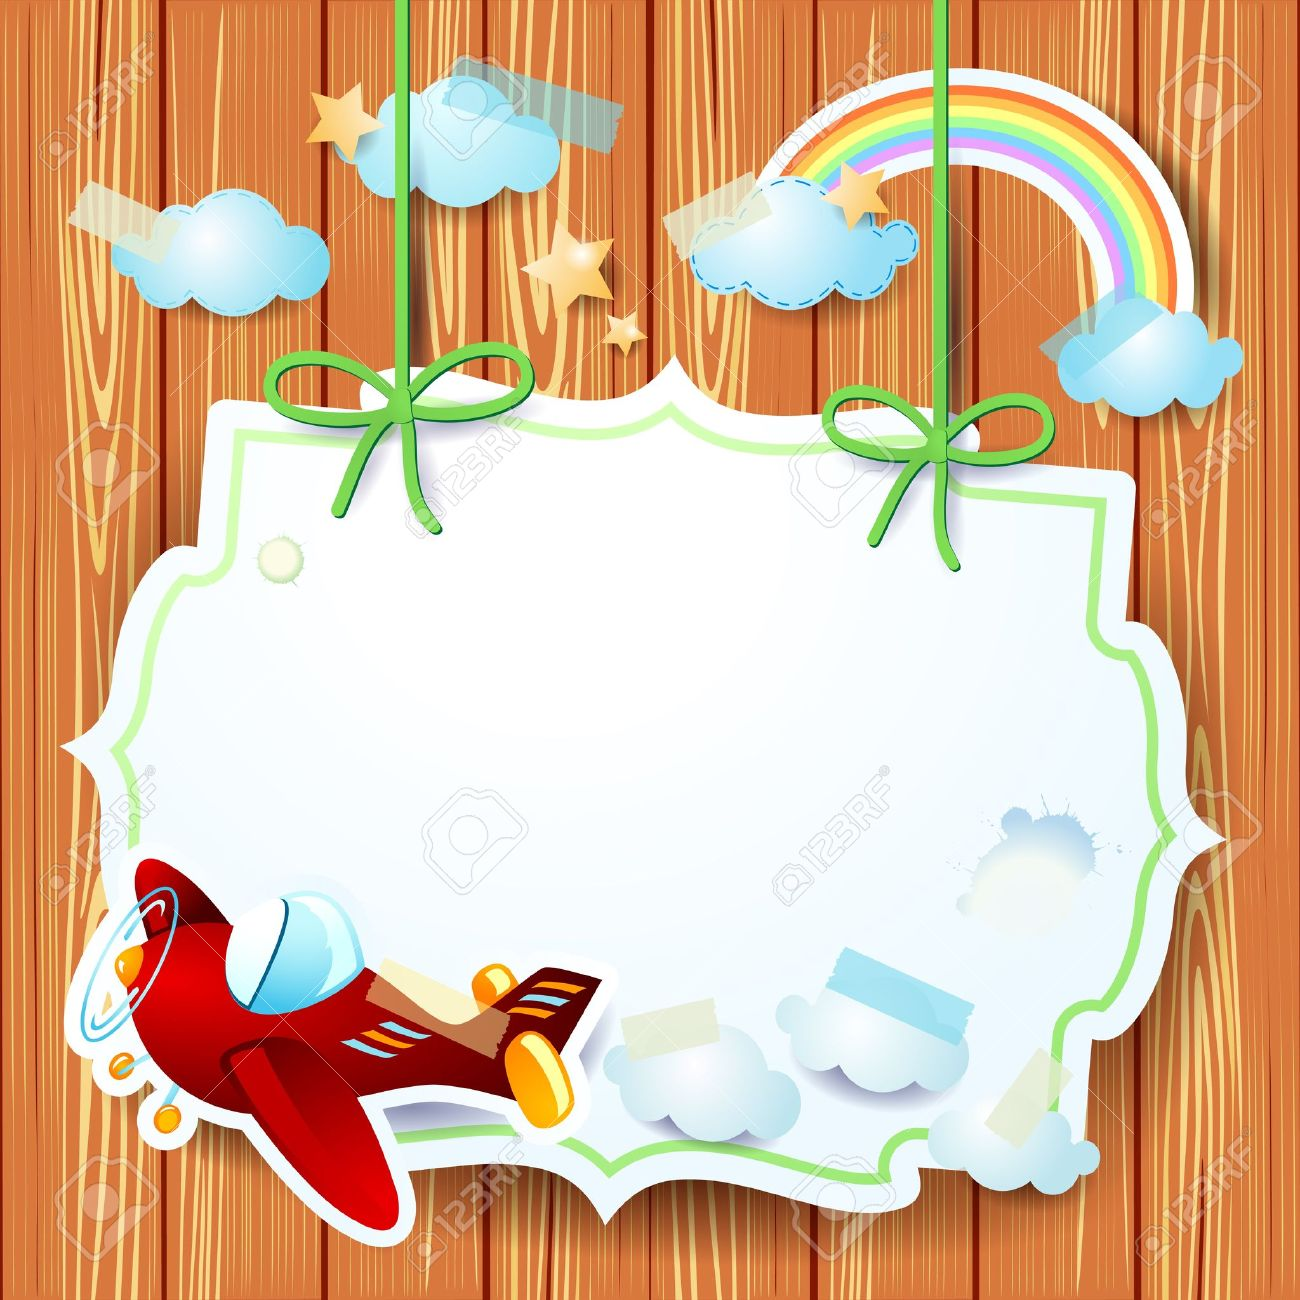 Fantasy background with label and airplane, vector - 19908741